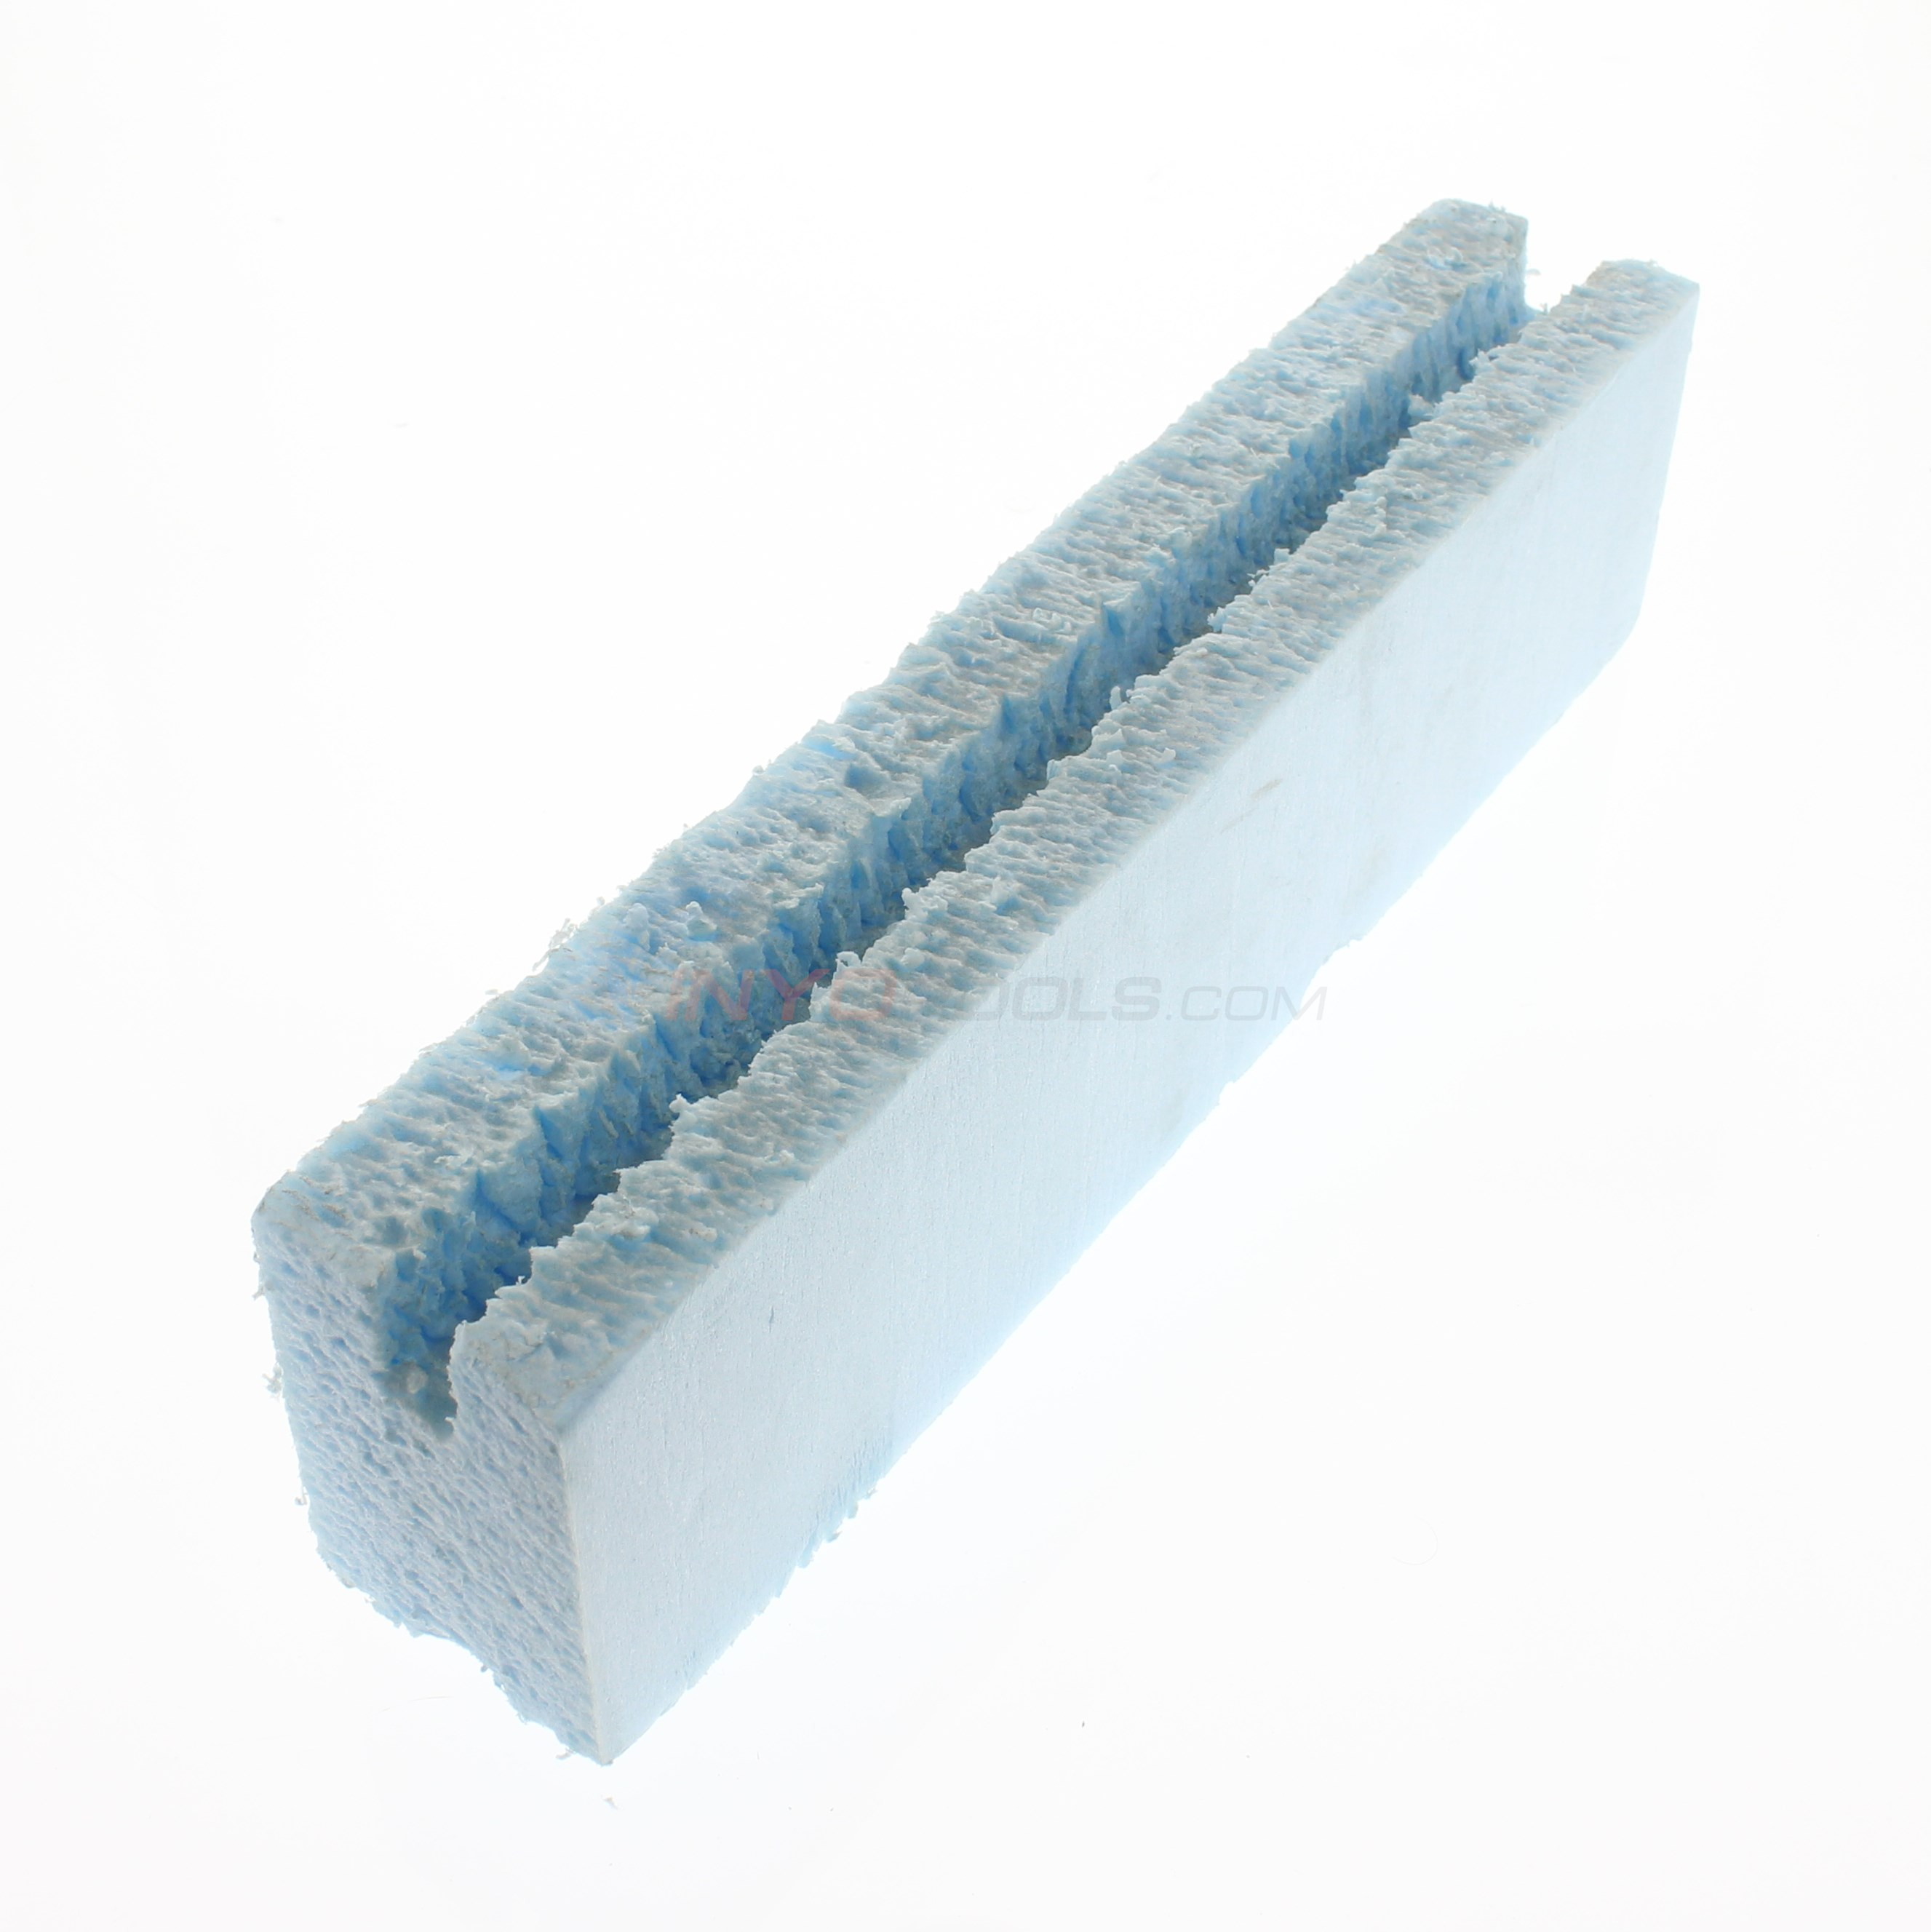 Extruded Polystyrene Piece (Single)